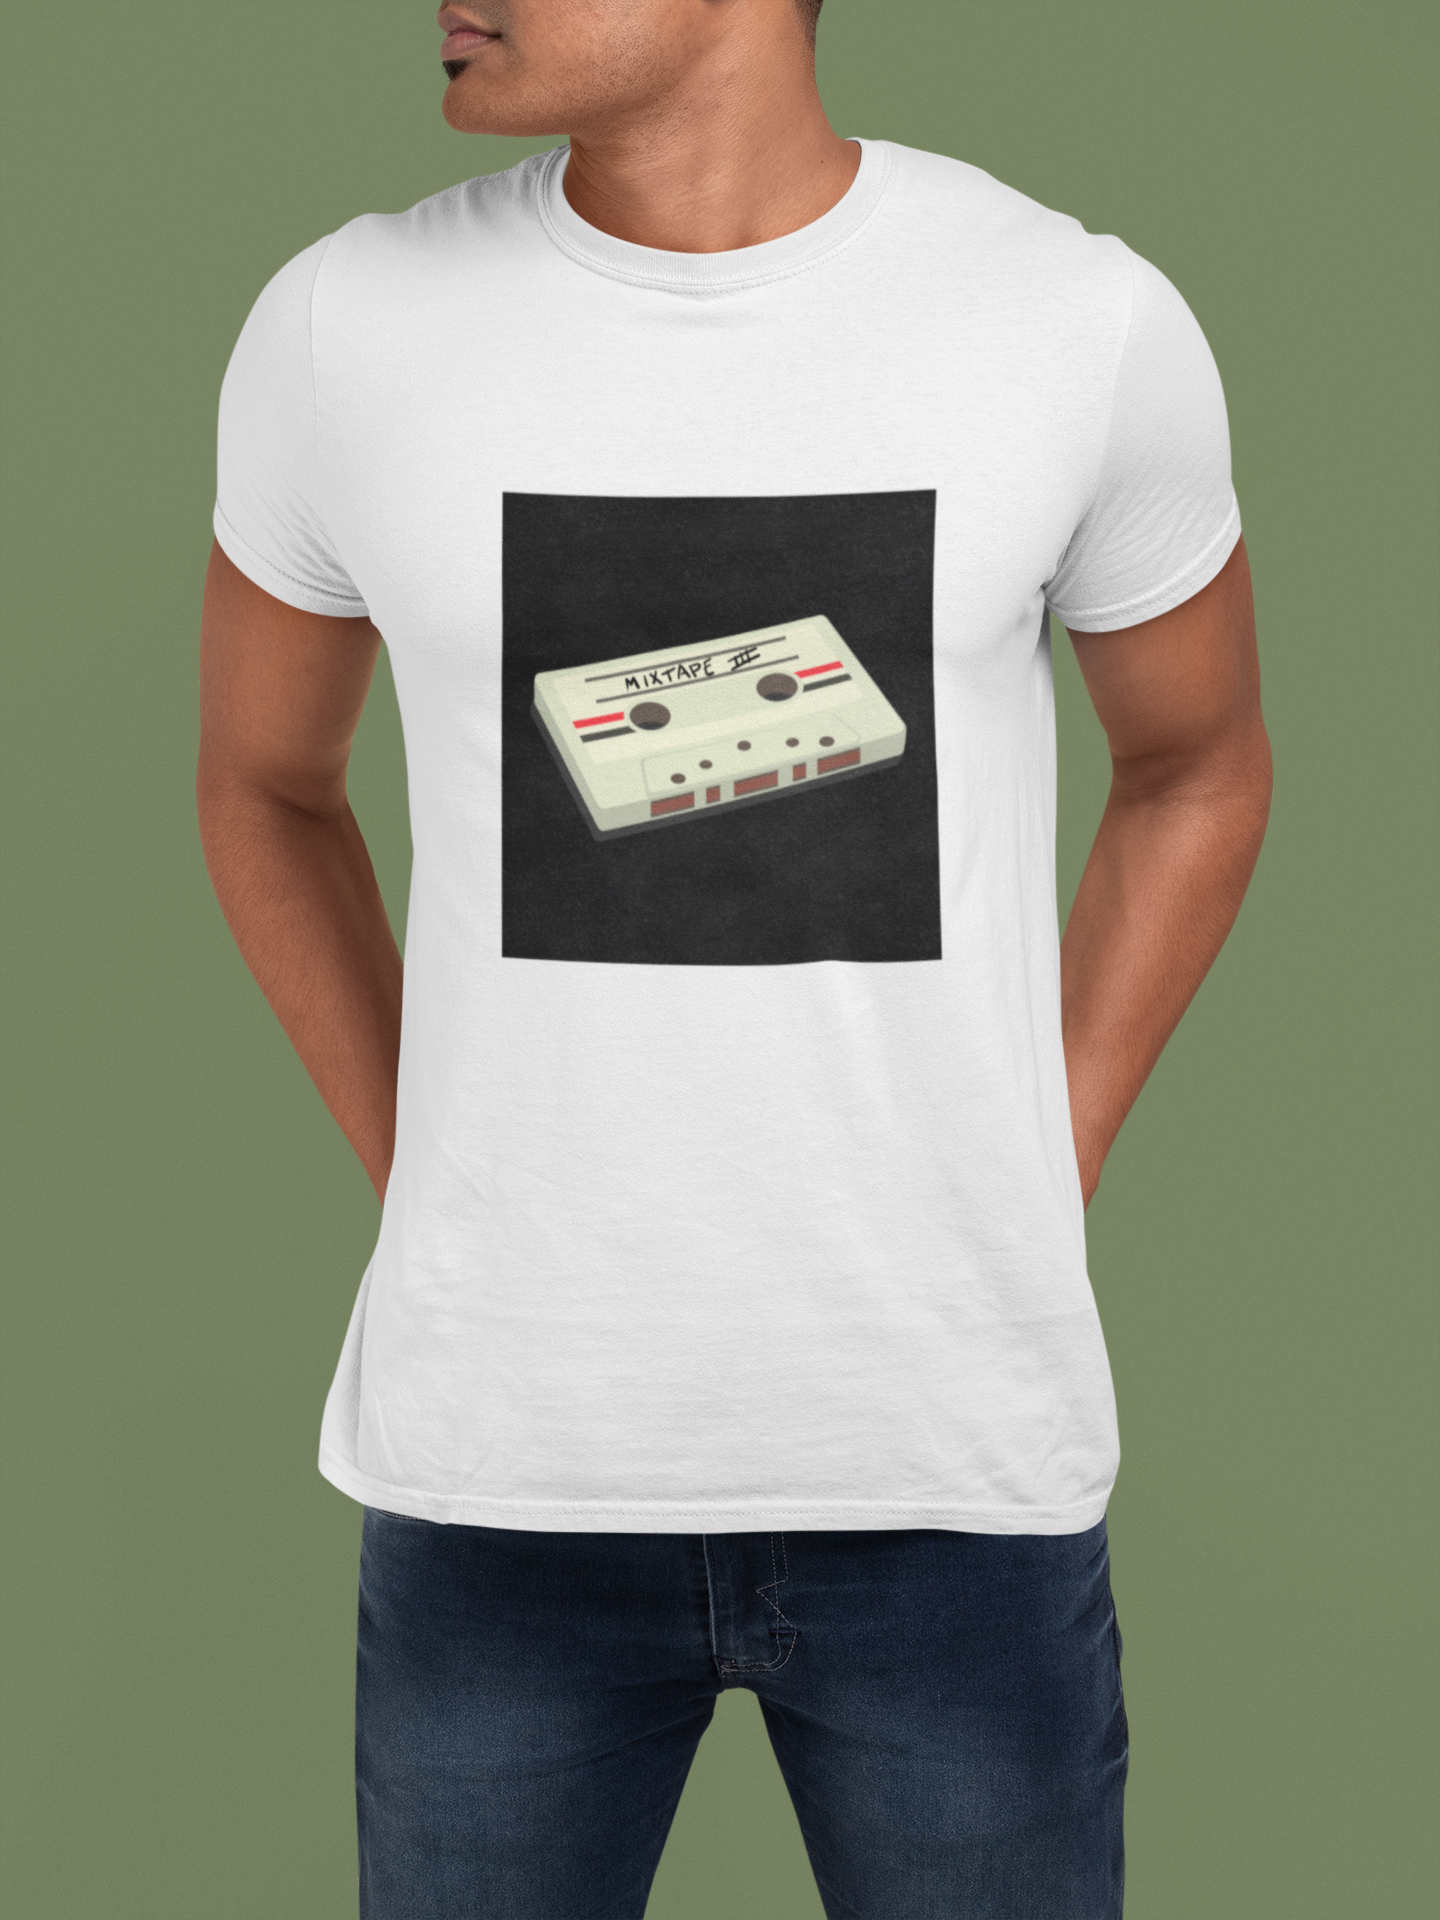 MIXTUPE-Graphic T-shirt